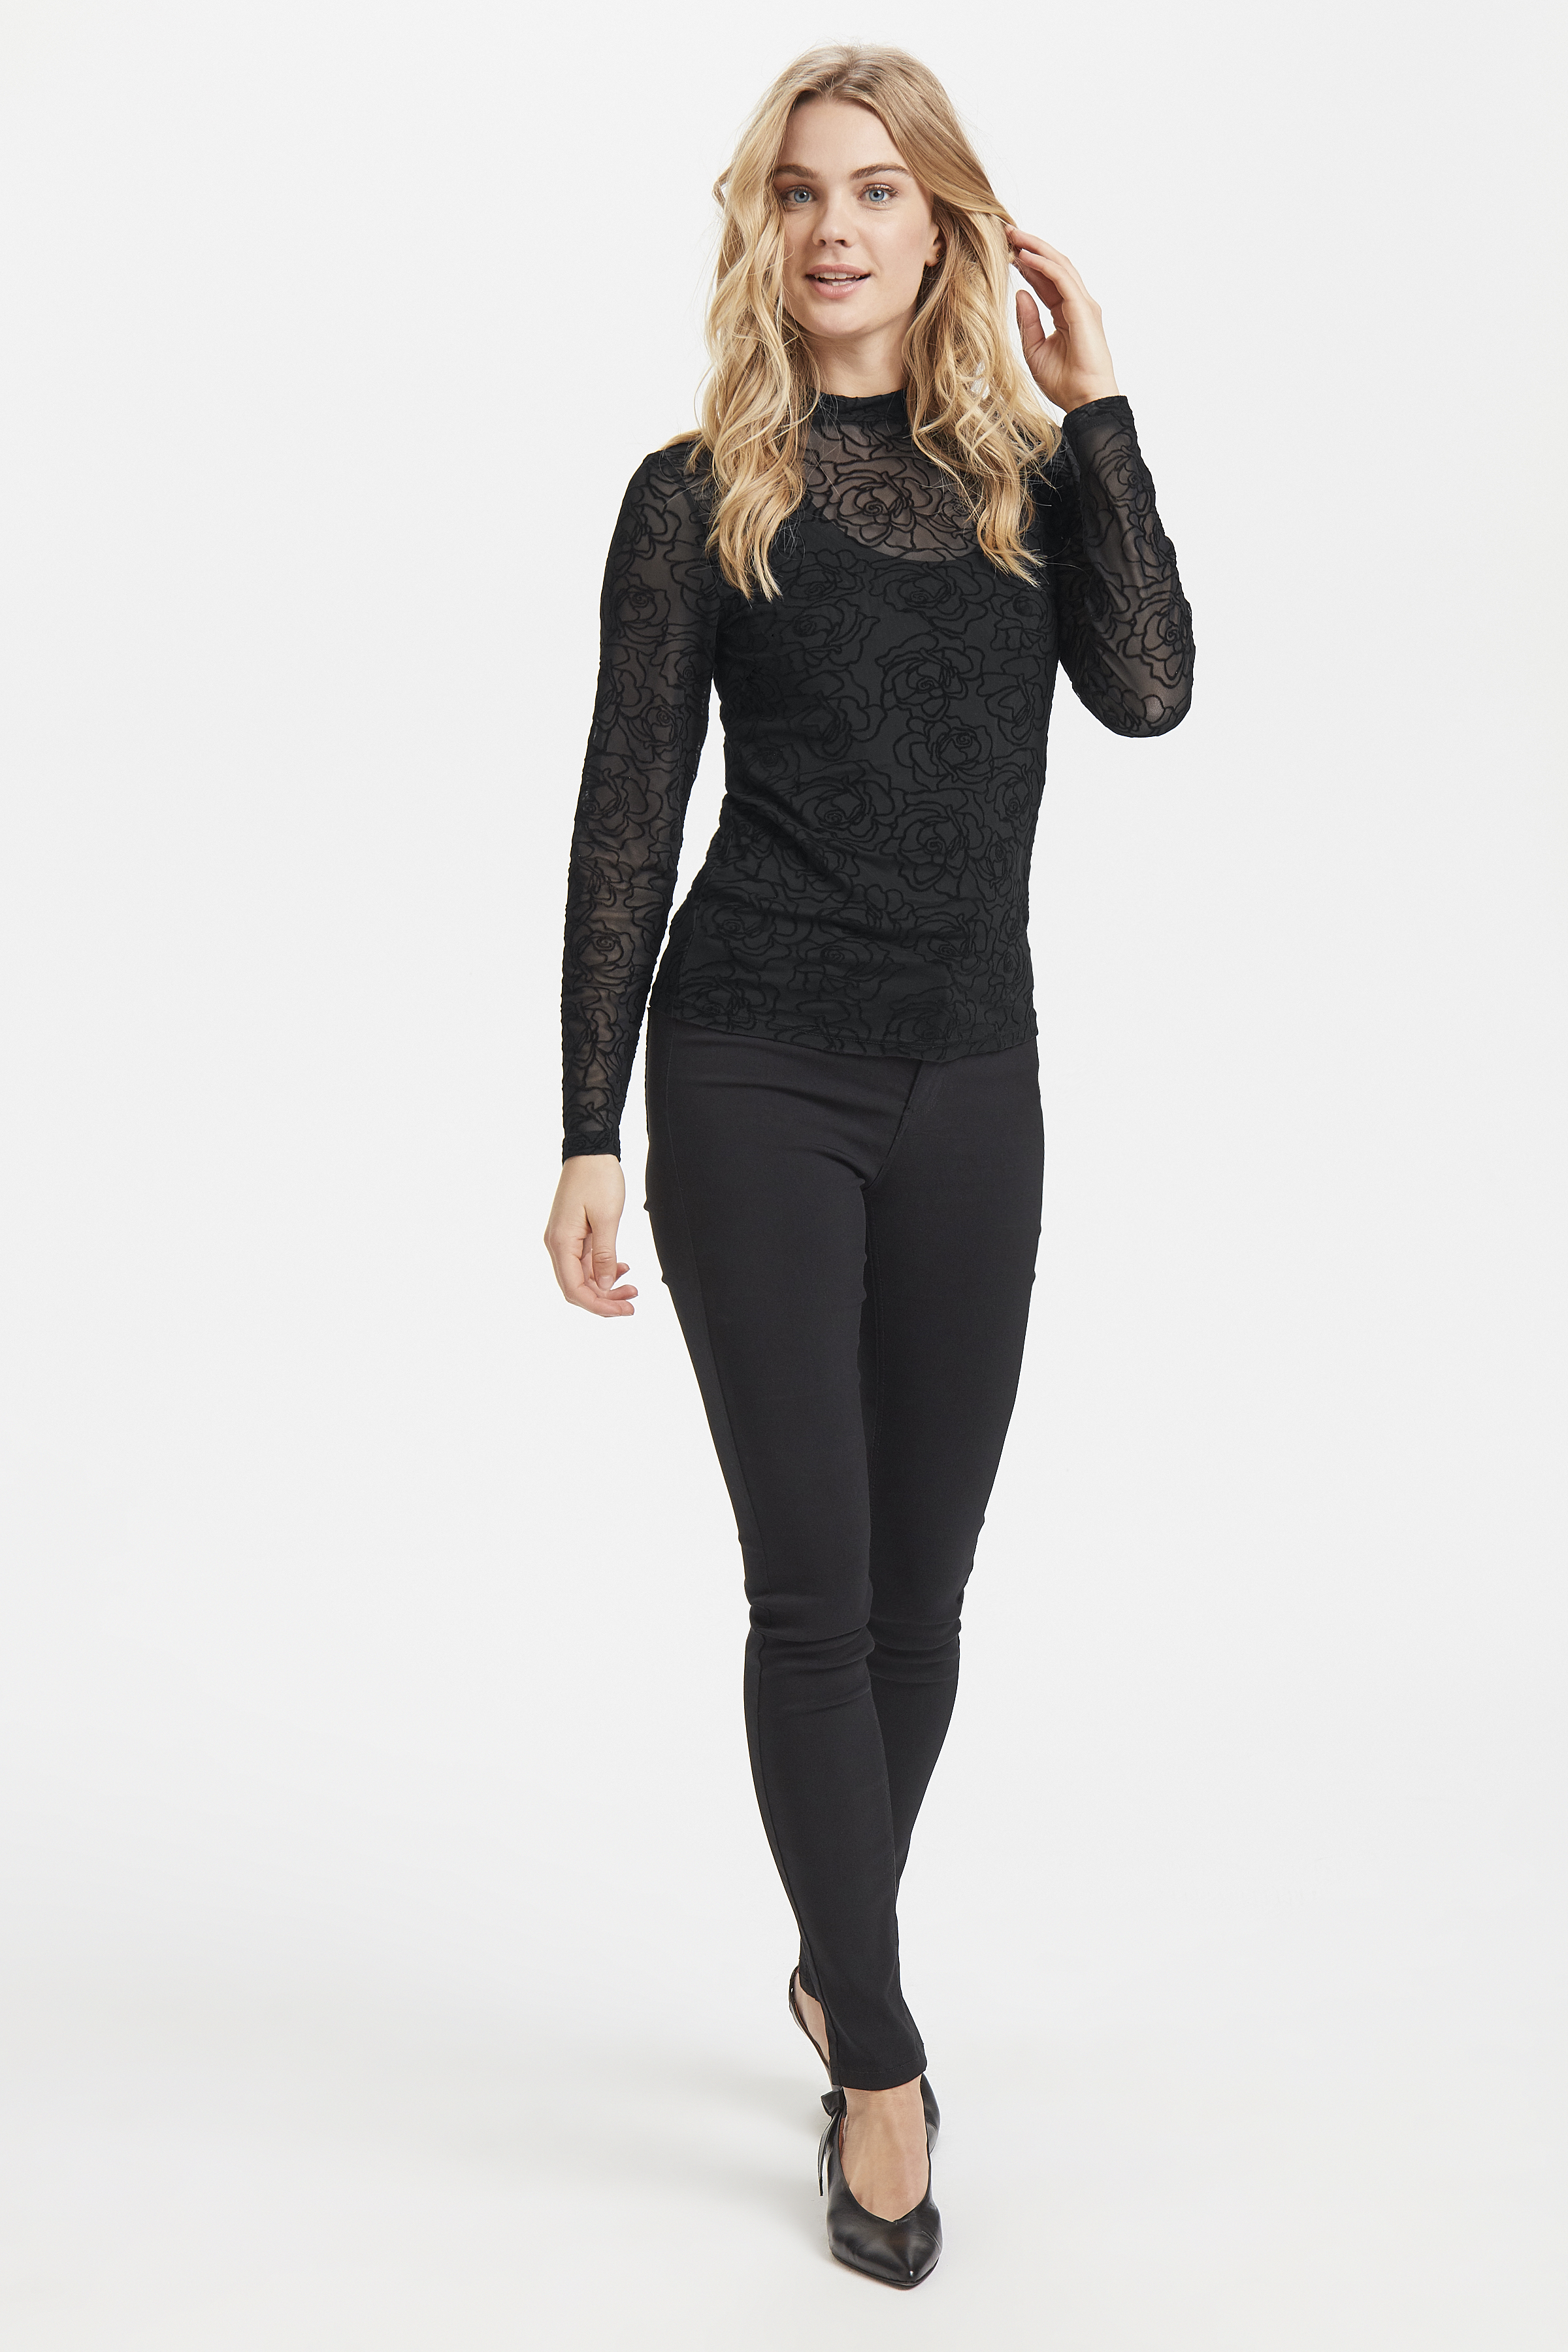 Black rose Combi 2  from b.young – Buy Black rose Combi 2  from size XS-XXL here